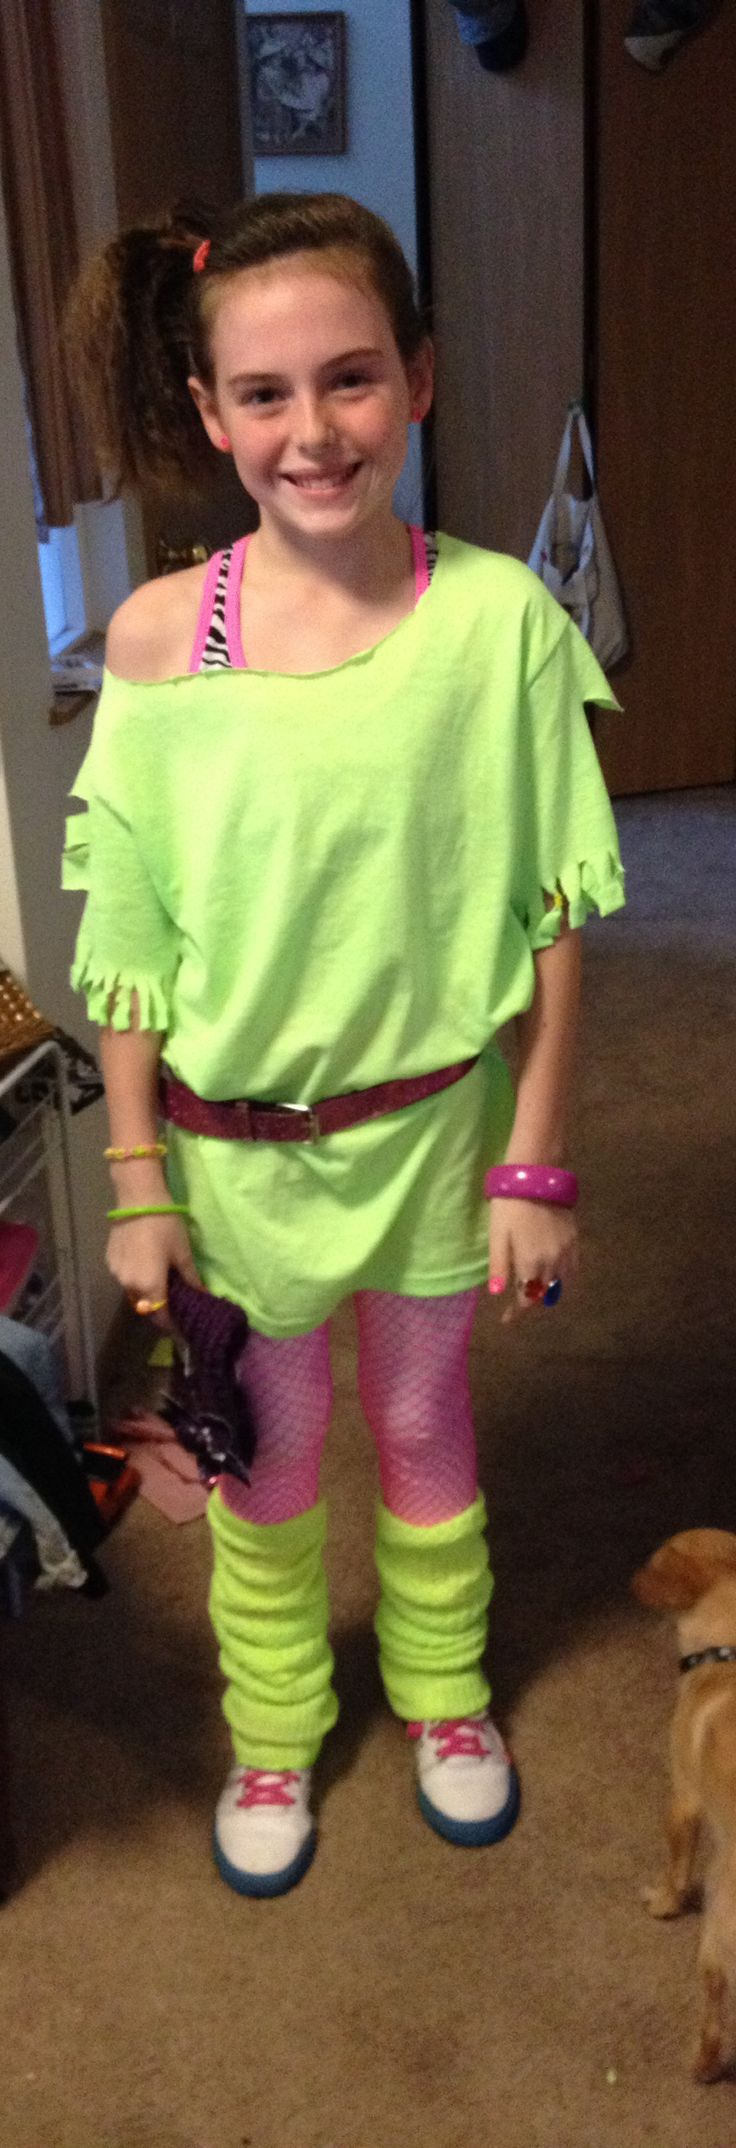 80s party...will have to convince Vada to have an 80s party theme one day when she's older...